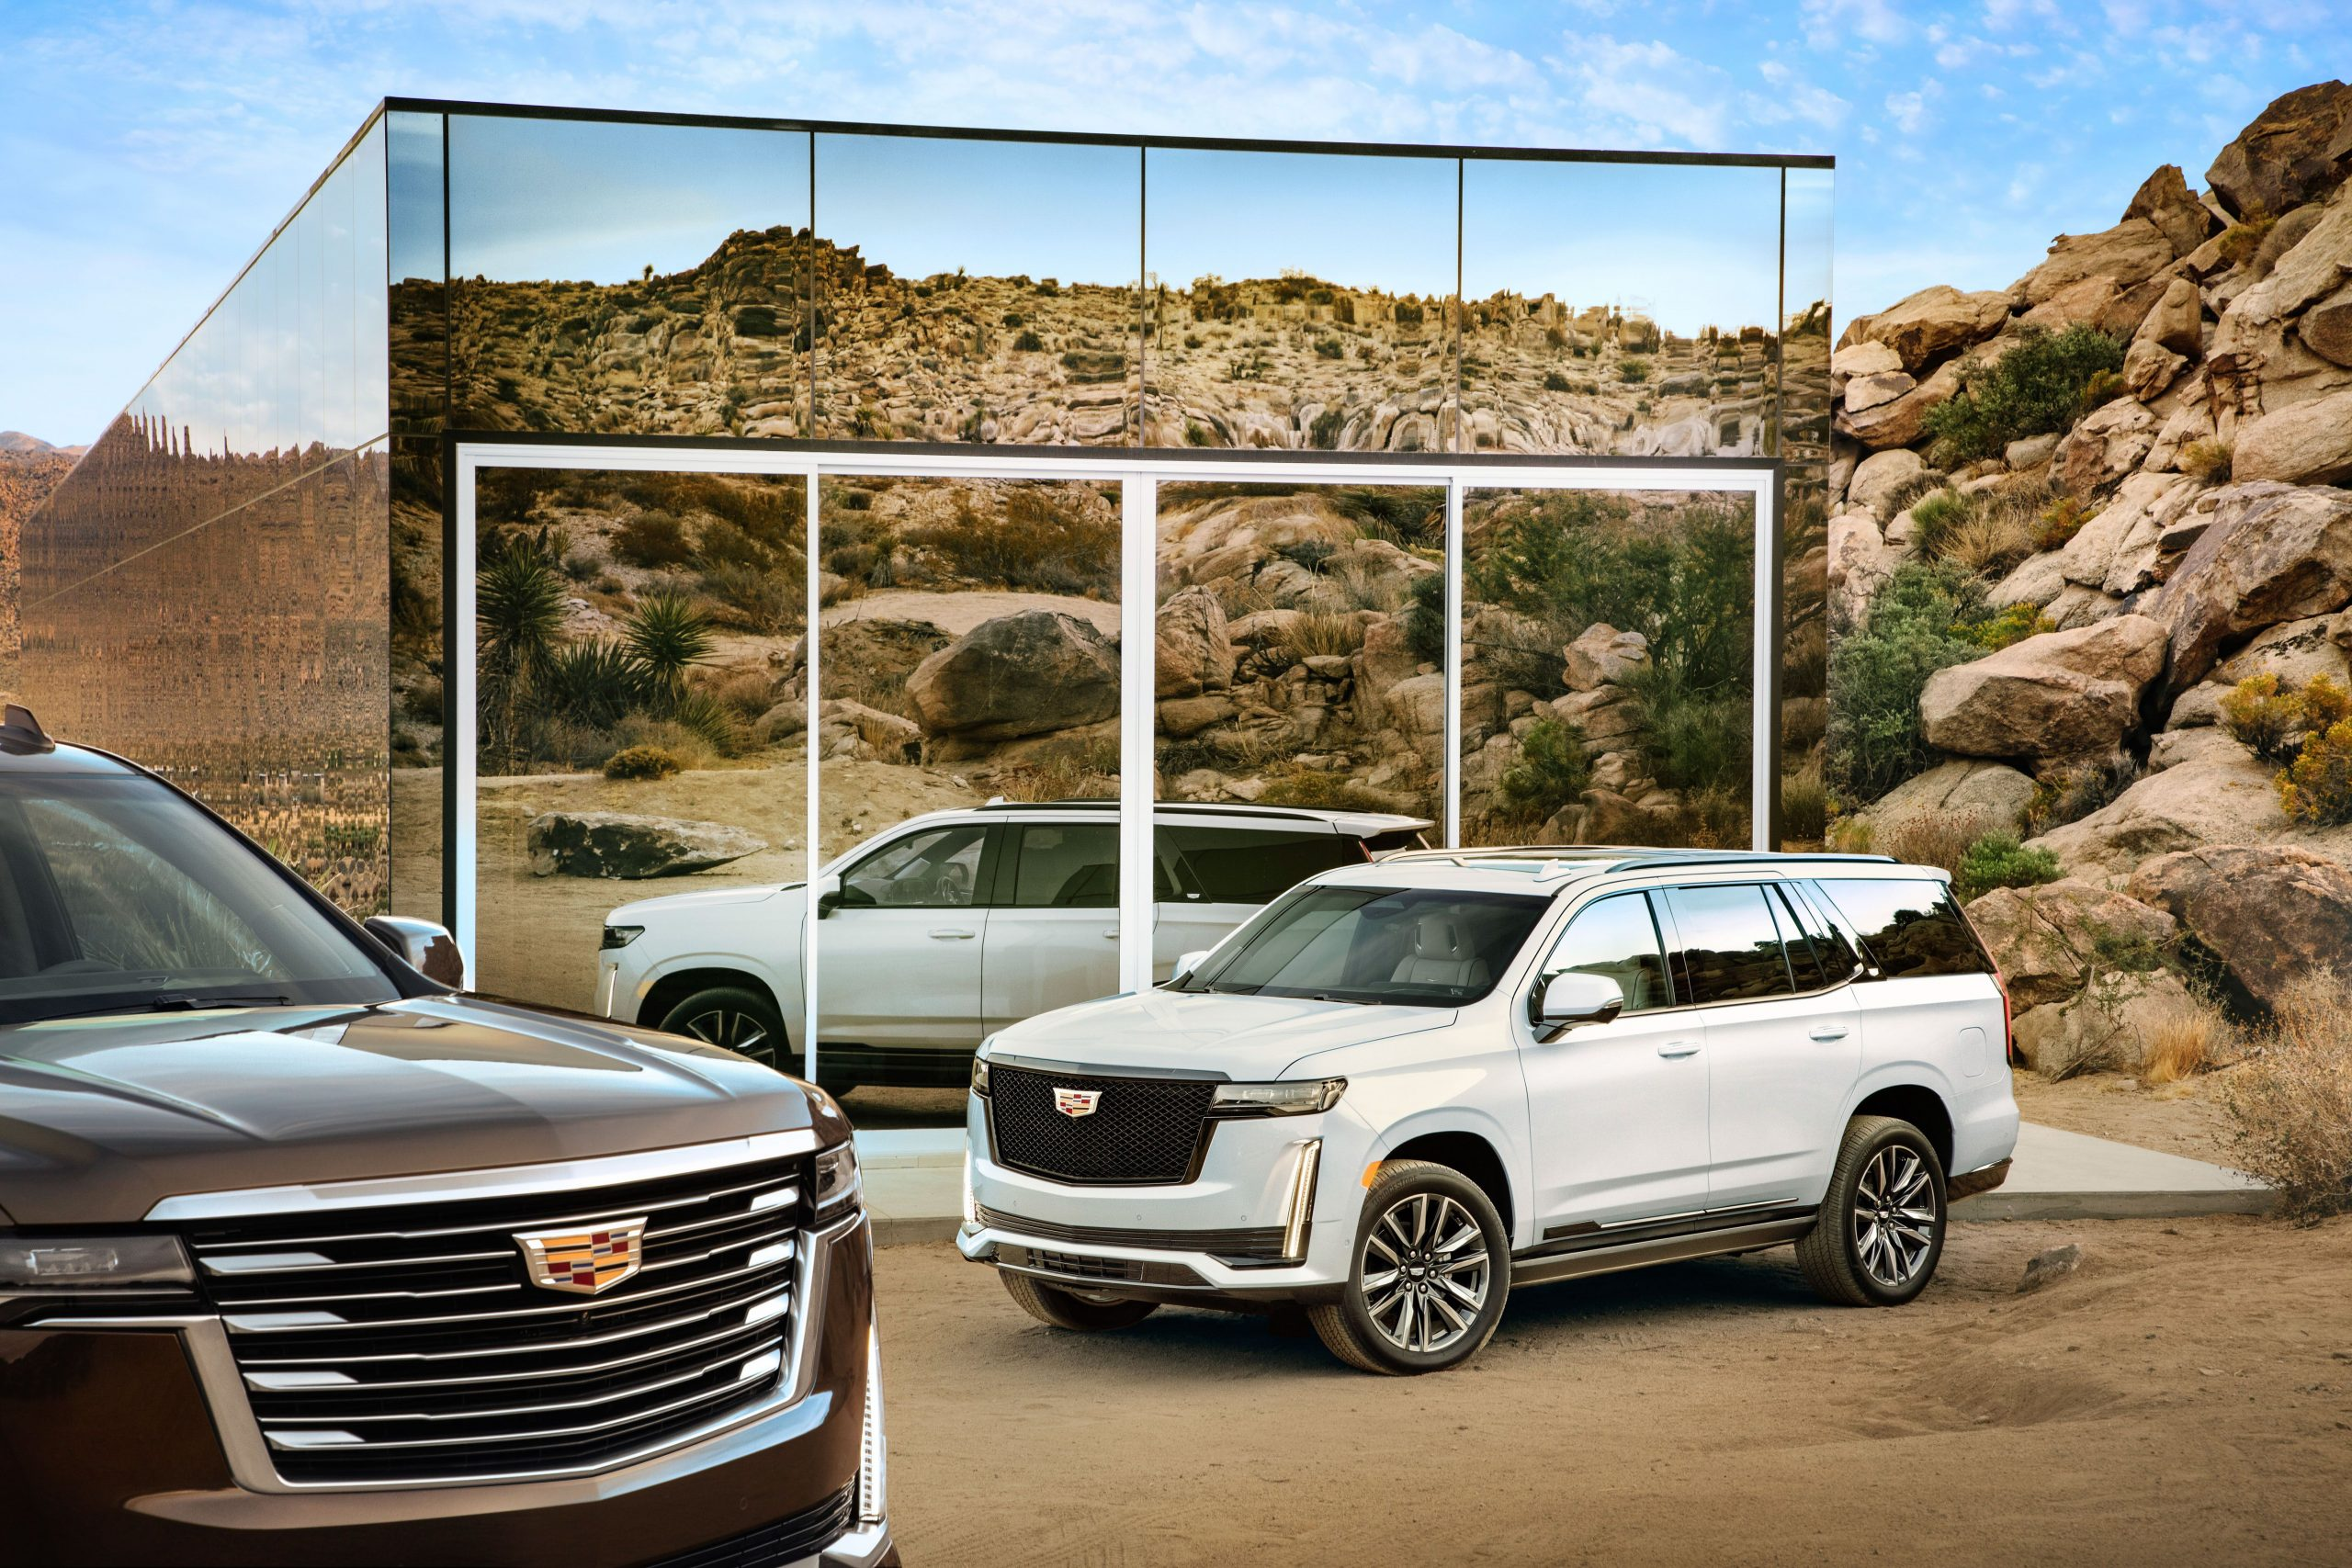 2021 Cadillac Escalade Price Jumps $1000, Tops Out Above 2021 Buick Enclave Interior Pictures, Invoice Price, Lease